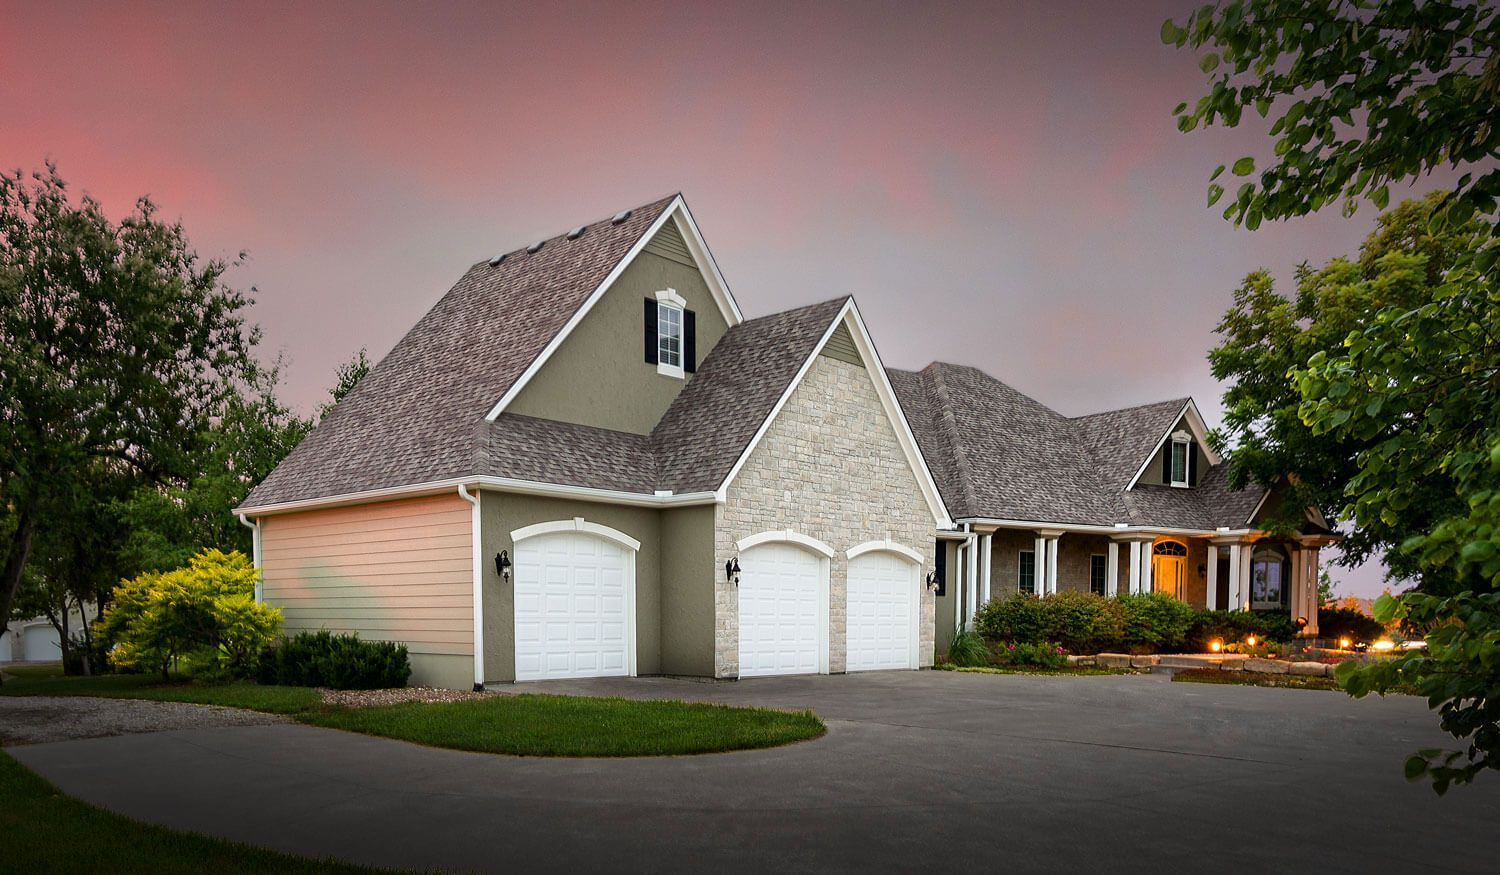 Certainteed Landmark Weathered Wood 2032 Sw West Trail Rd Topeka Kansas House Exterior Paint Colors For Home Exterior Decor